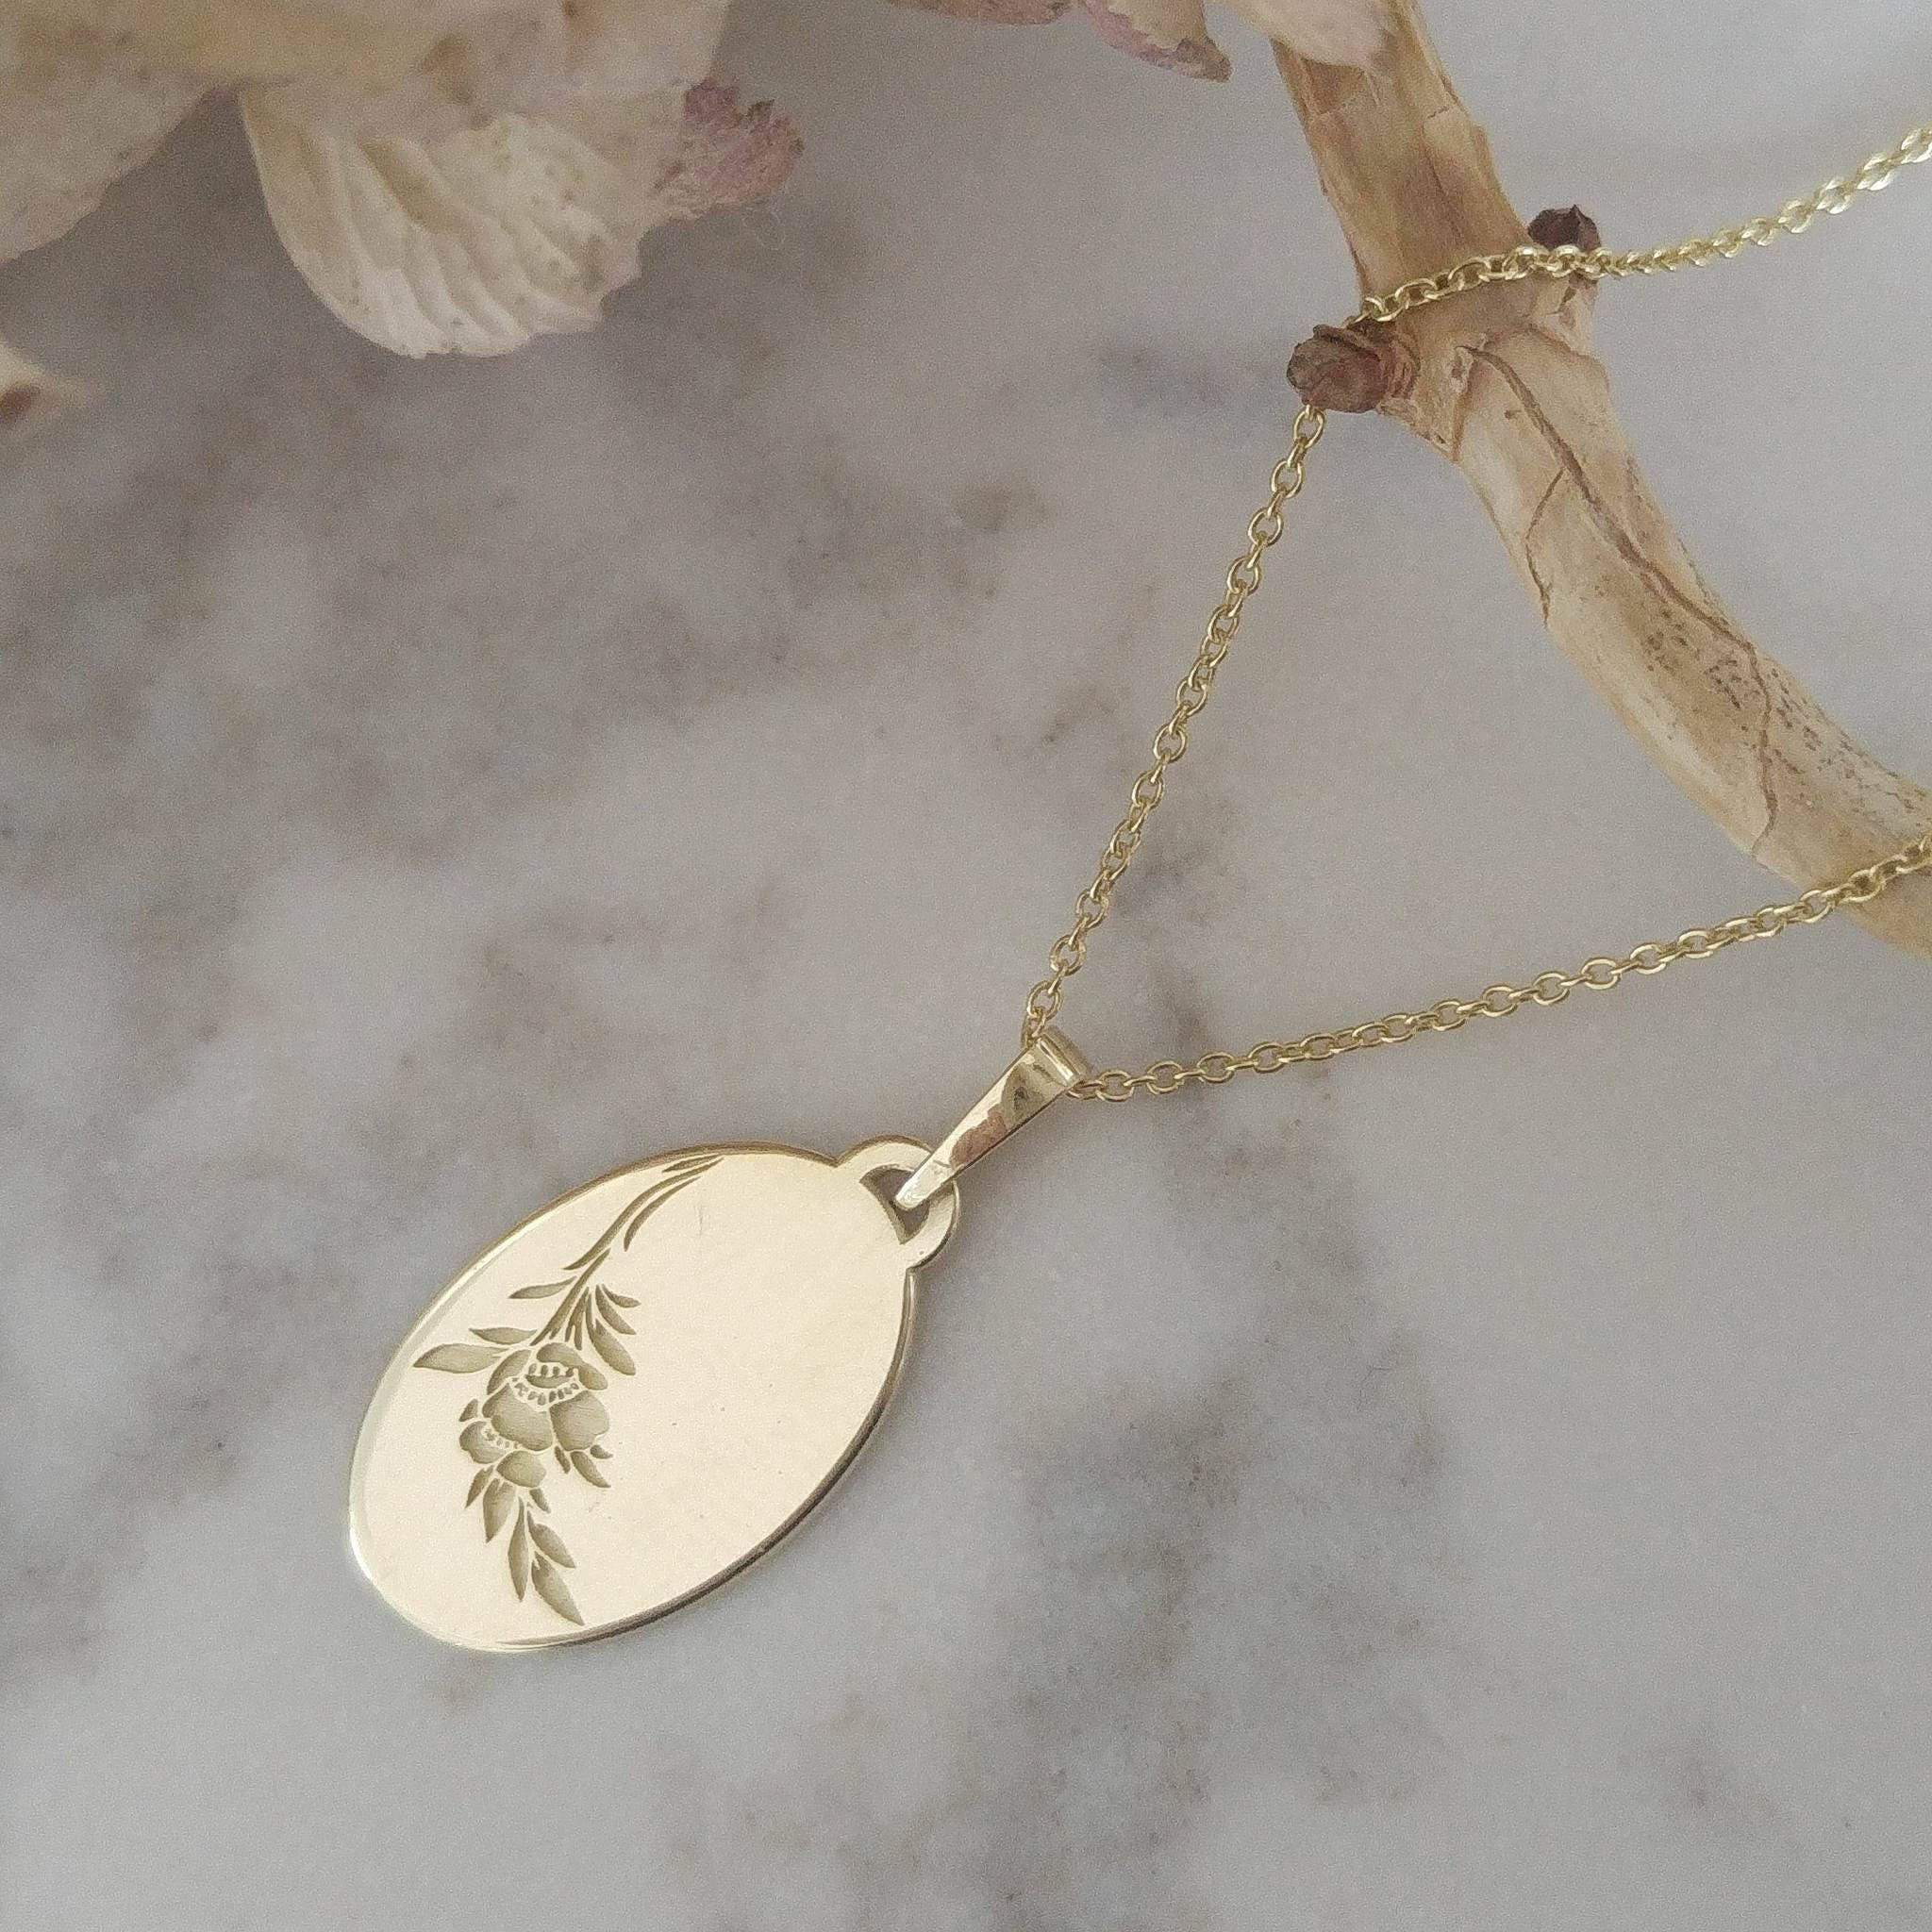 bar handmade img pendant handstamped jewelry necklace personalized gold necklaces